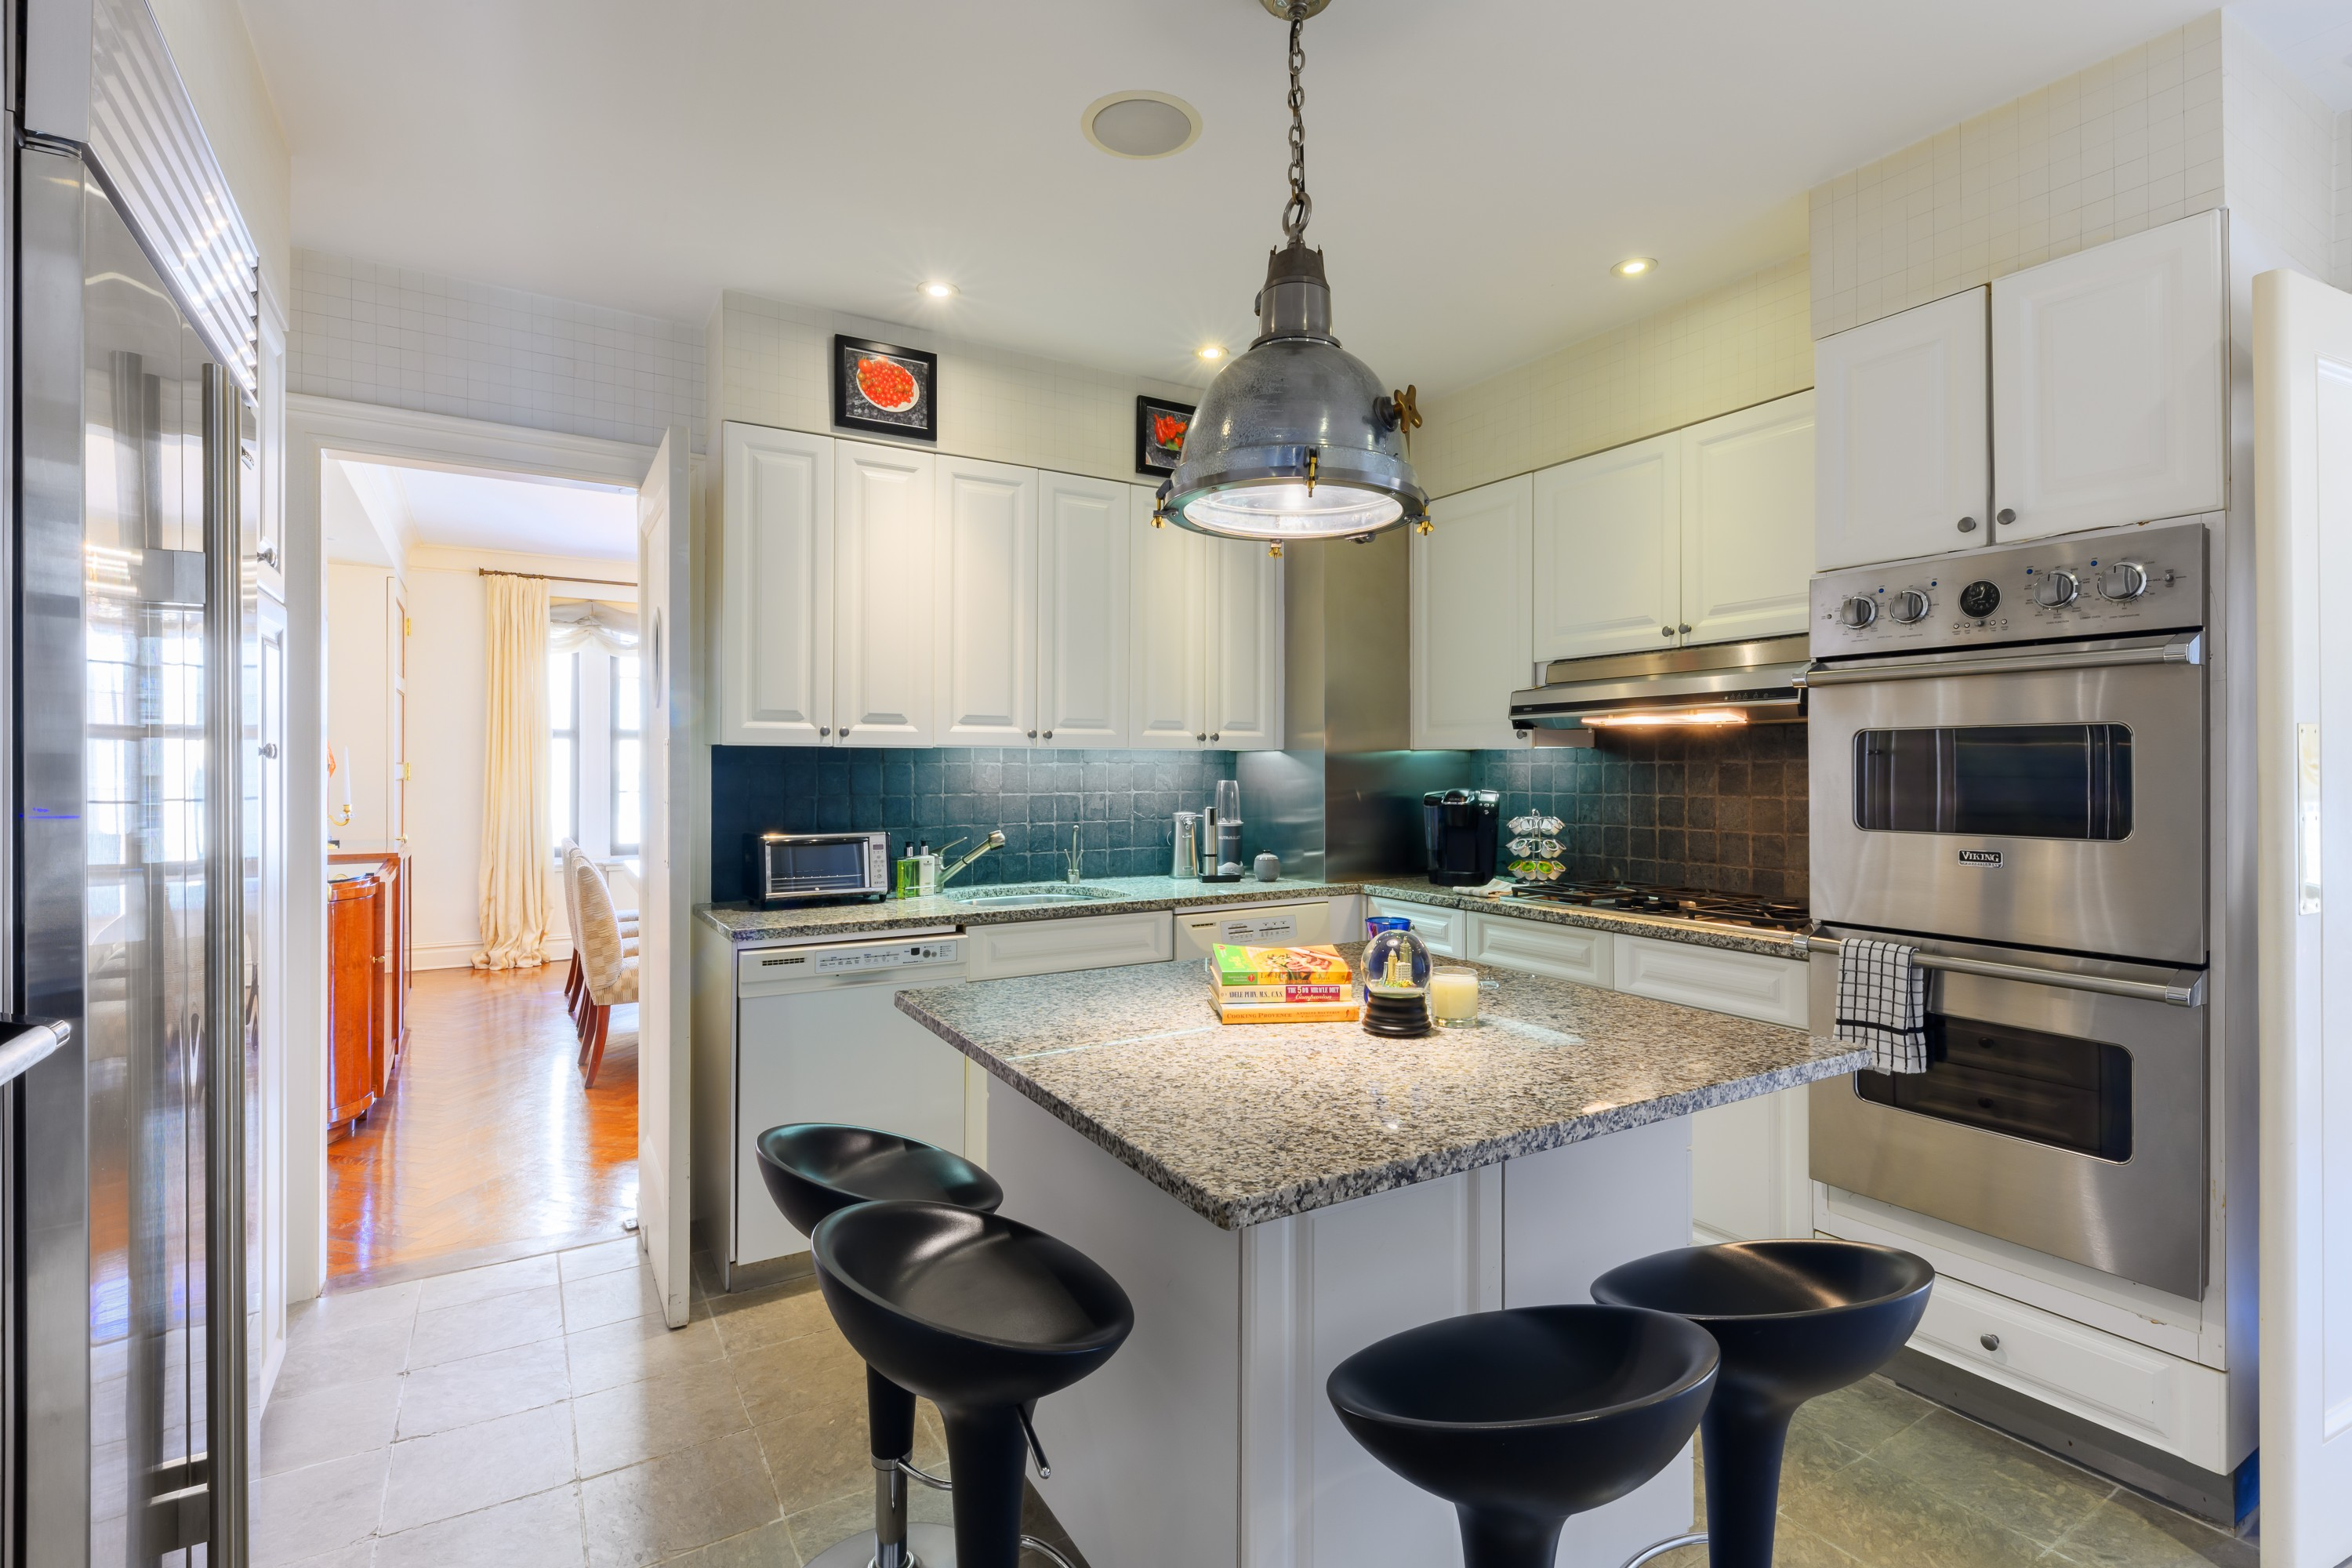 Listing PRCH-780082 - Image